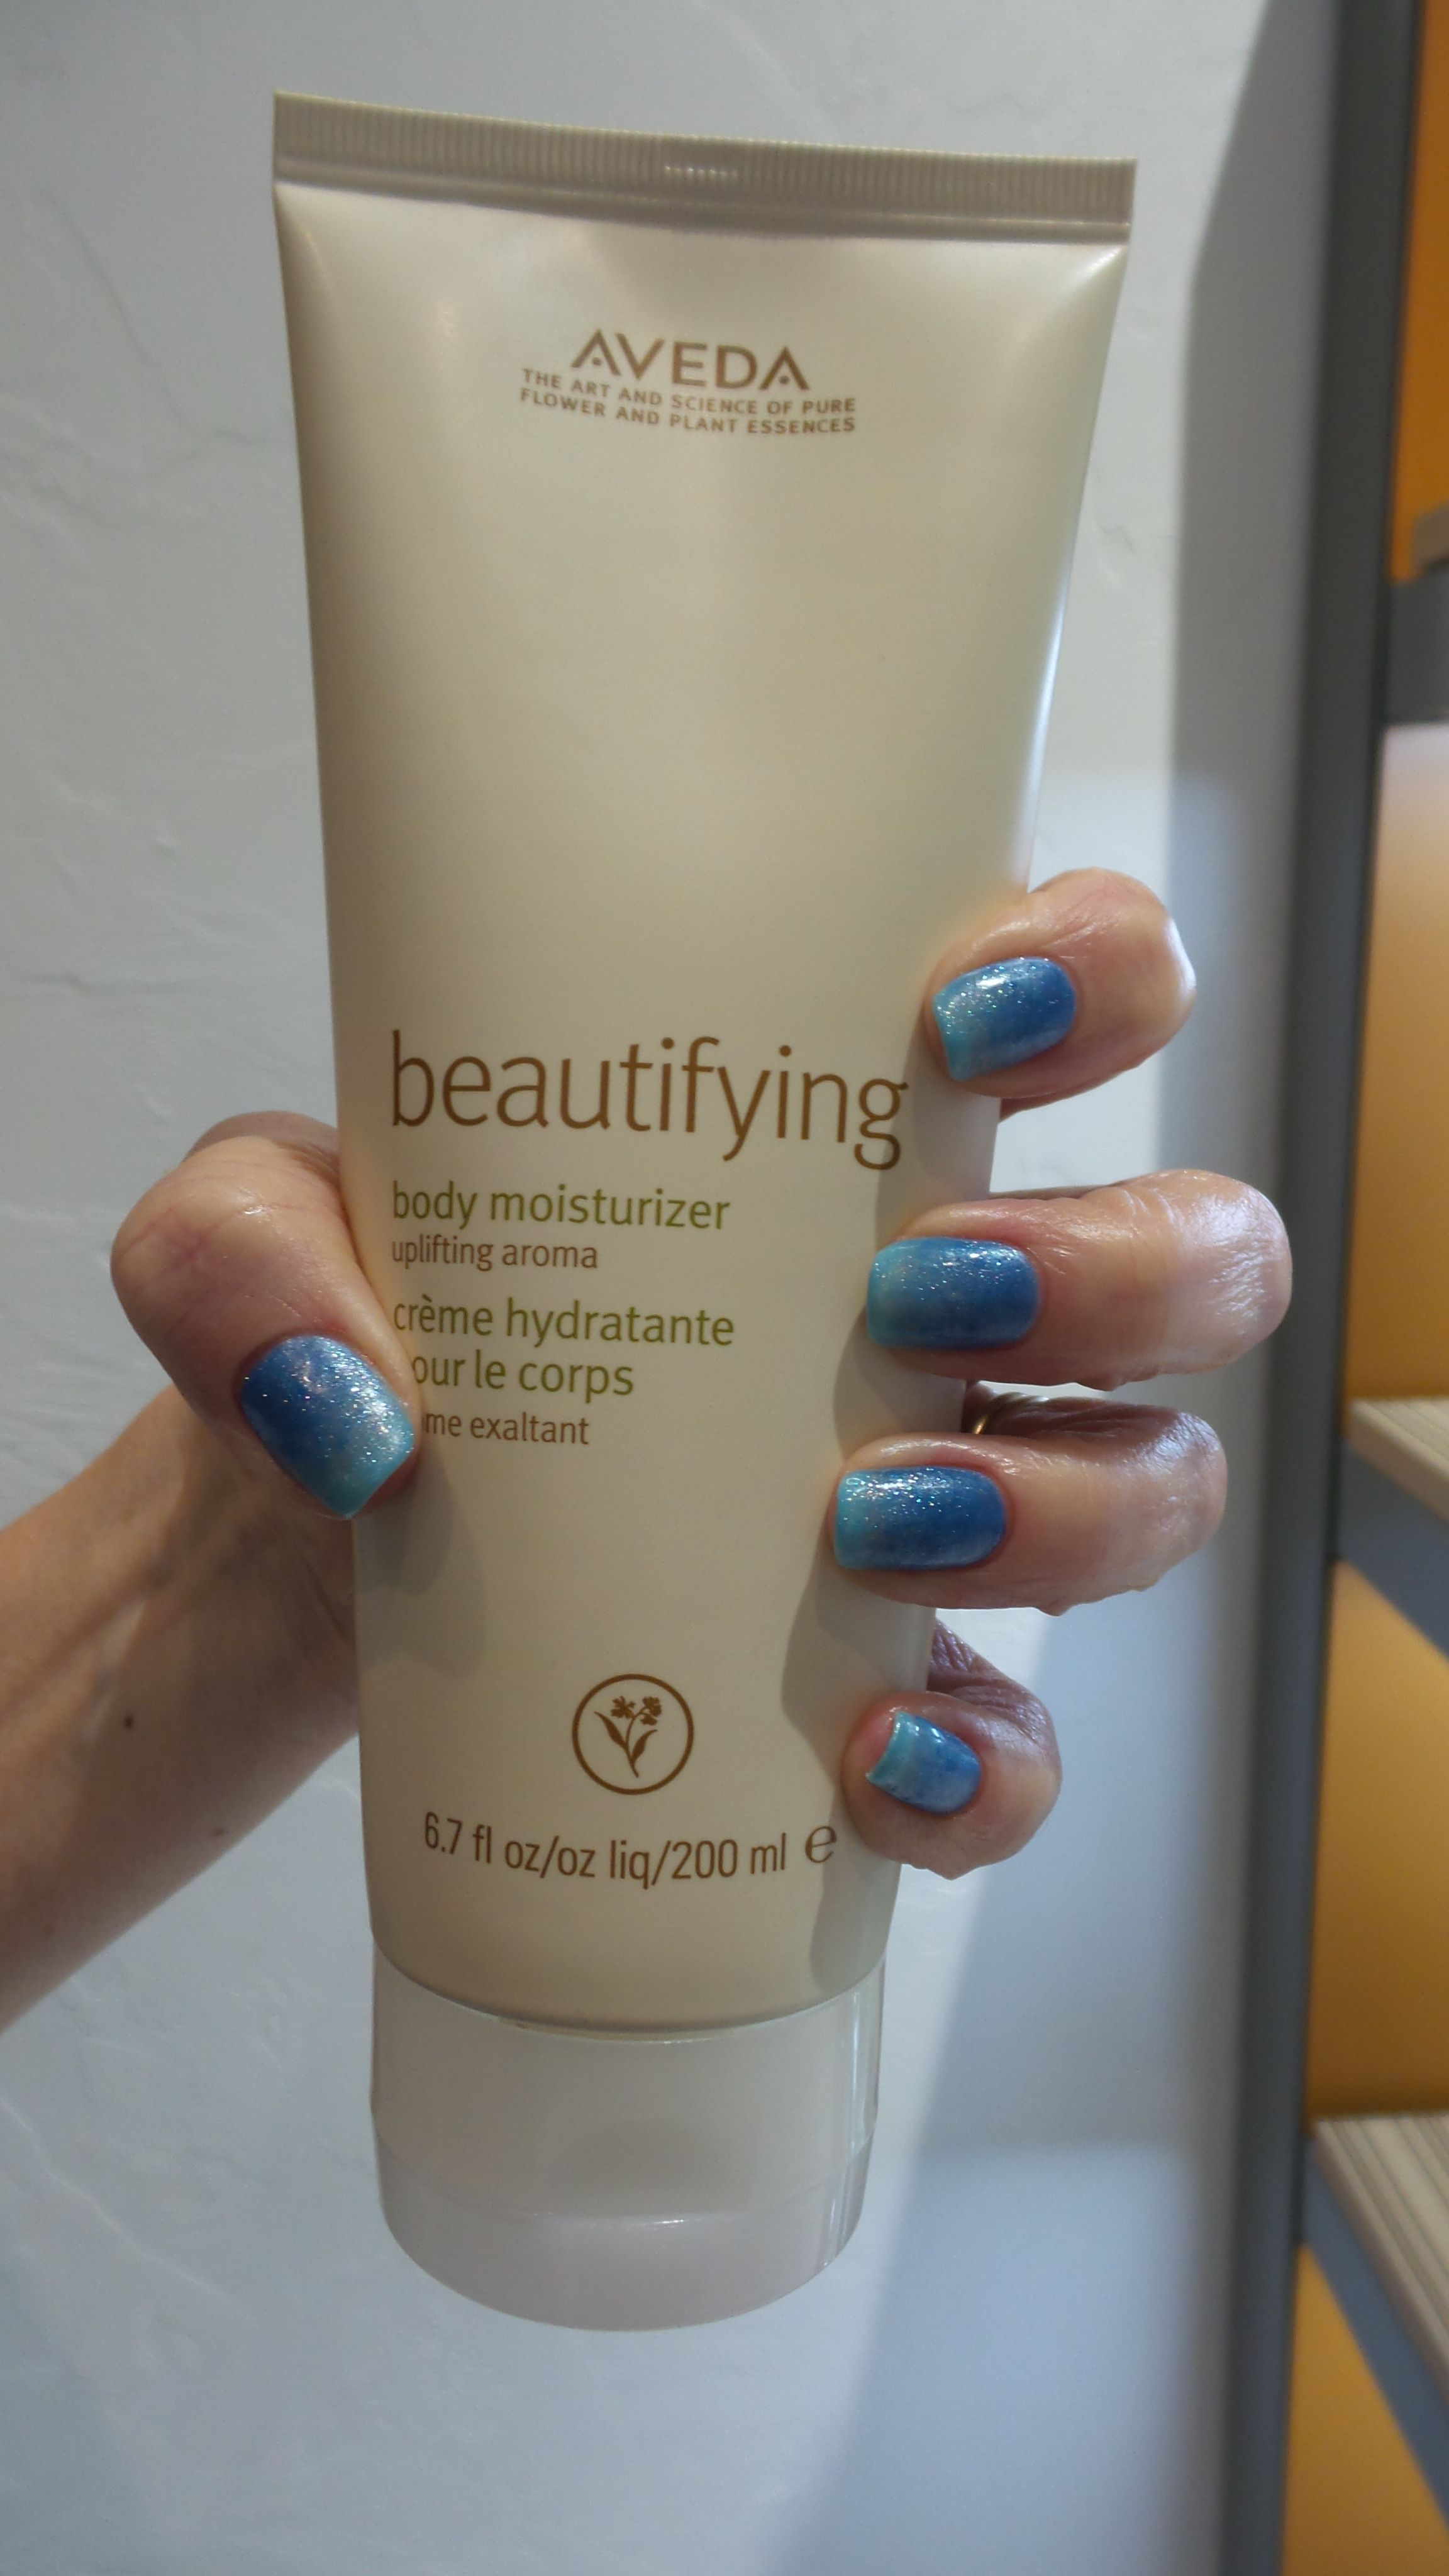 Shellac and #Aveda Beautifying Body Moisturizer! Must haves ...